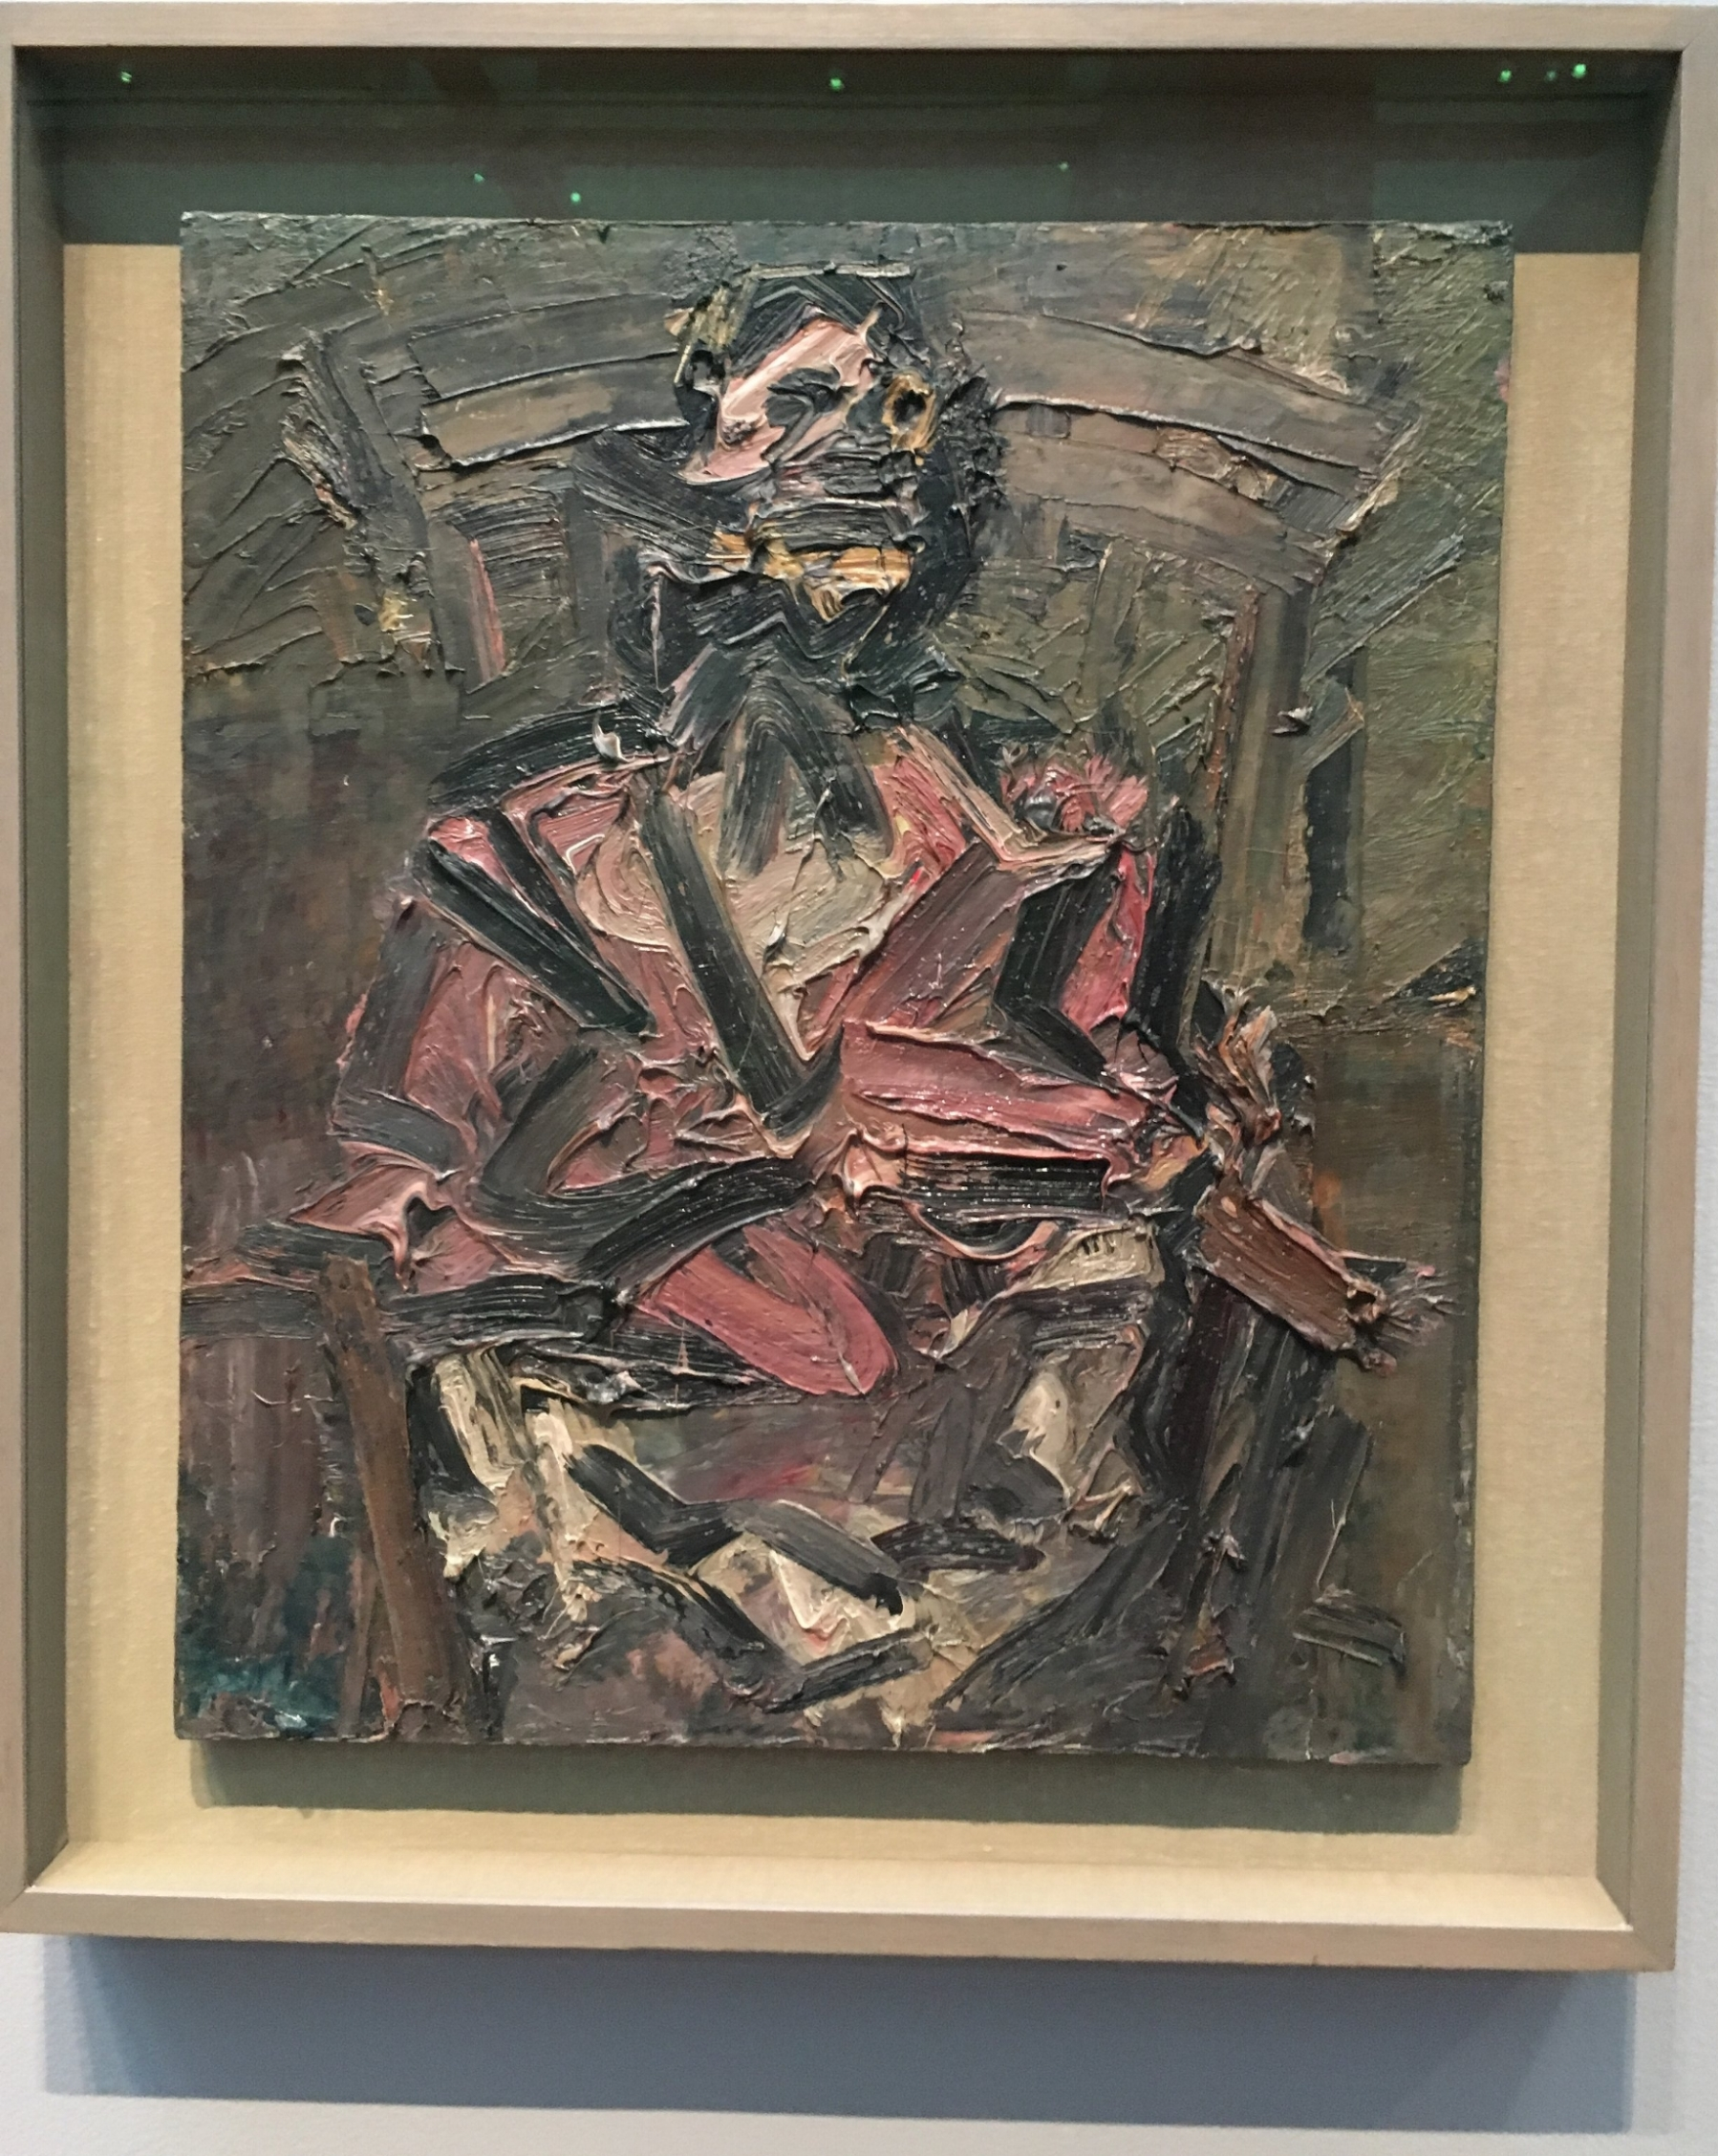 JYM Seated No. 1 by Frank Auerbach, 1981. Currently showing at  London Calling  at The Getty until November. Read my thoughts  here